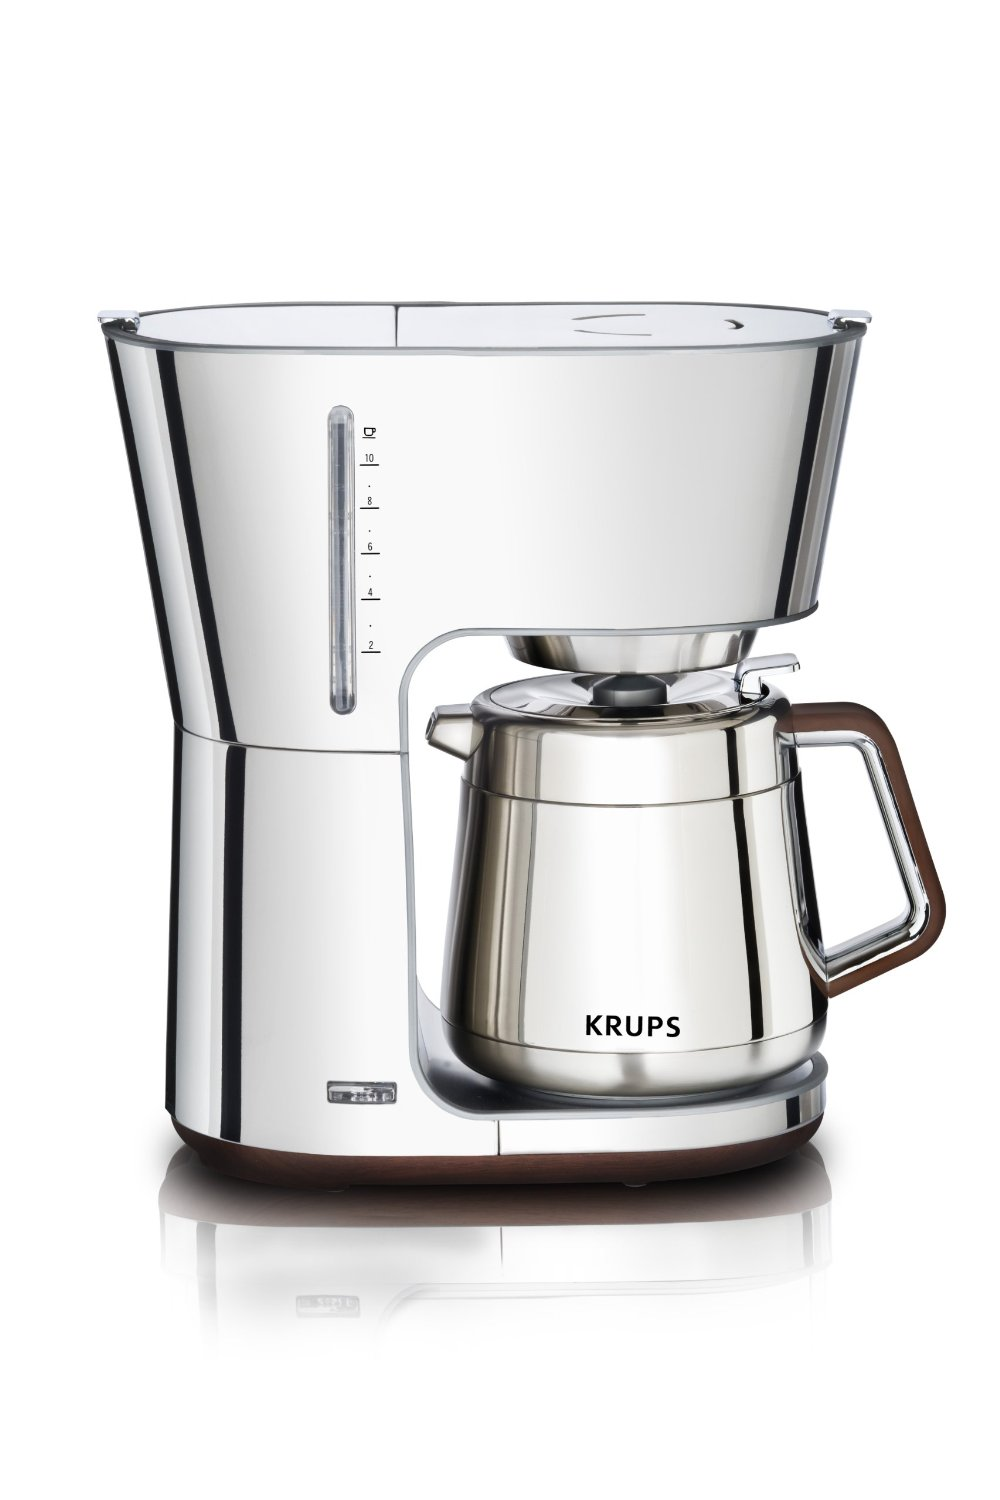 Coffee maker with grinder and thermal carafe - Click Here To Read More Reviews About Krups Km720d50 Programmable 12 Cup Coffee Maker With Glass Carafe And Lcd Screen Stainless Steel